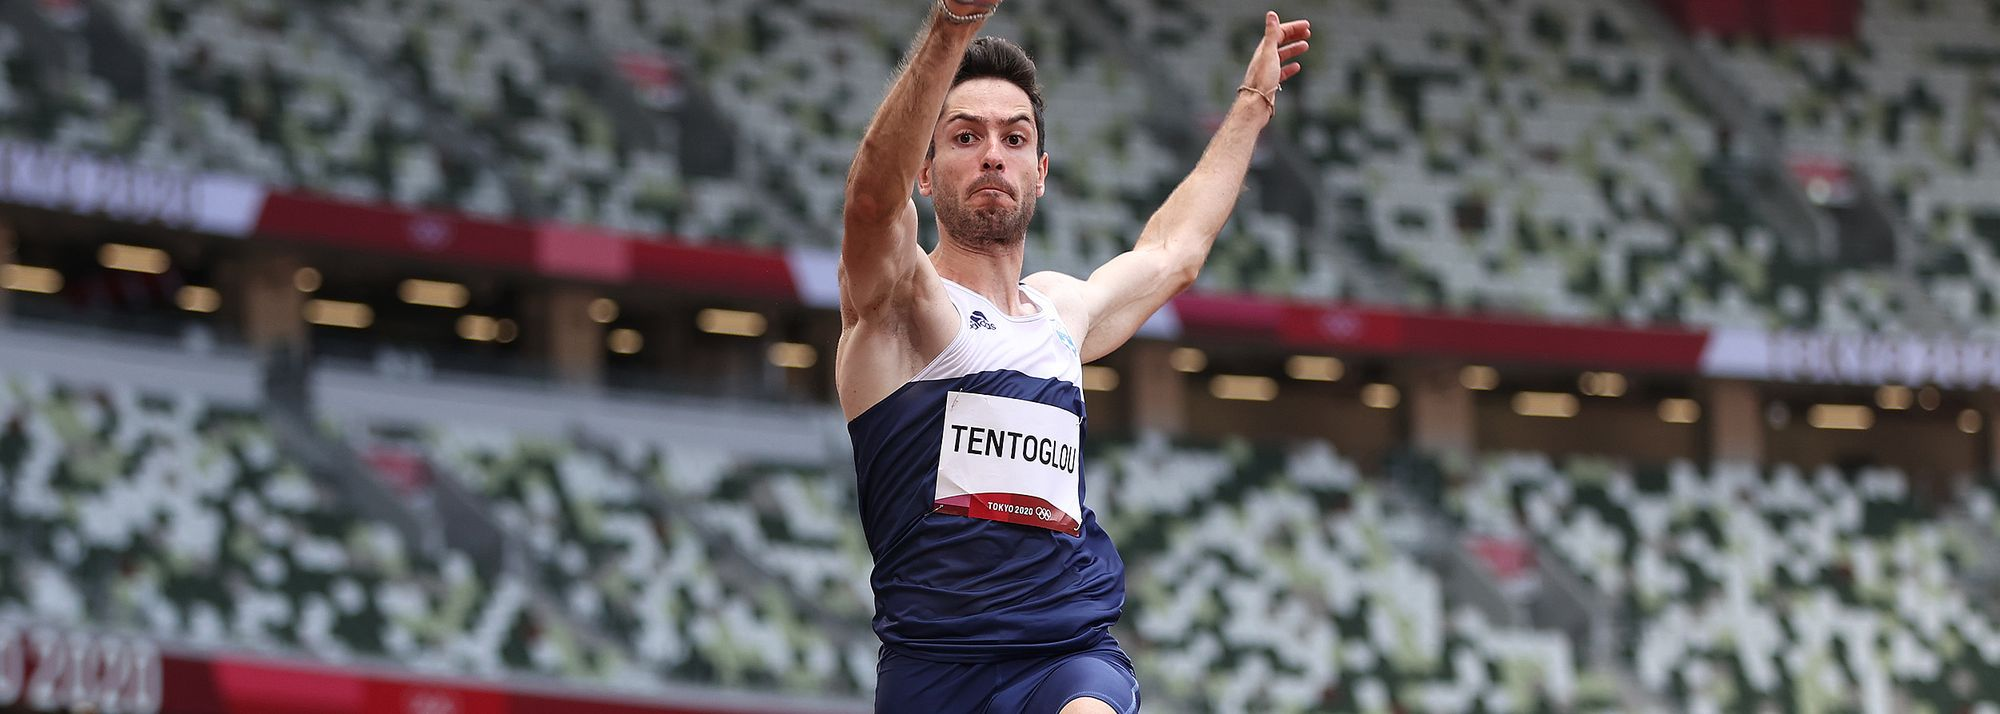 Miltiadis Tentoglou of Greece saved his best for last